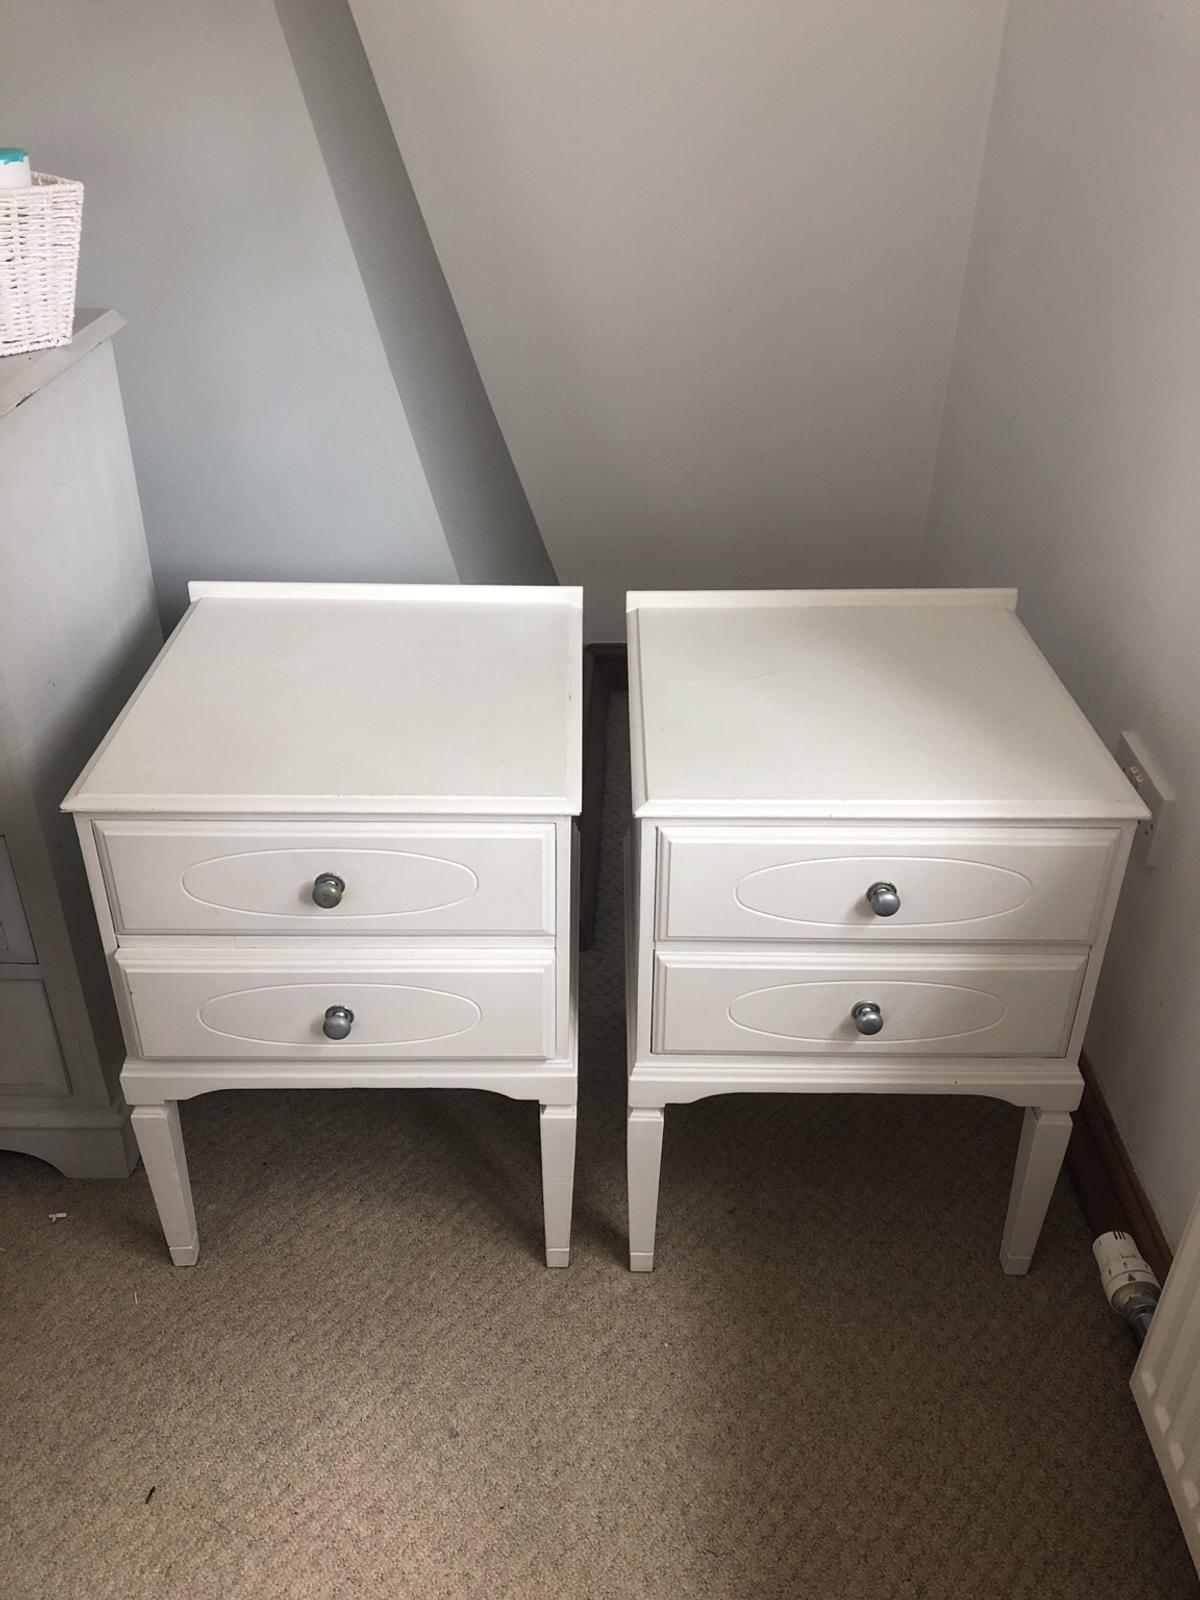 Picture of: 2x Painted White Solid Wood Bedside Tables In B78 Tamworth For 45 00 For Sale Shpock